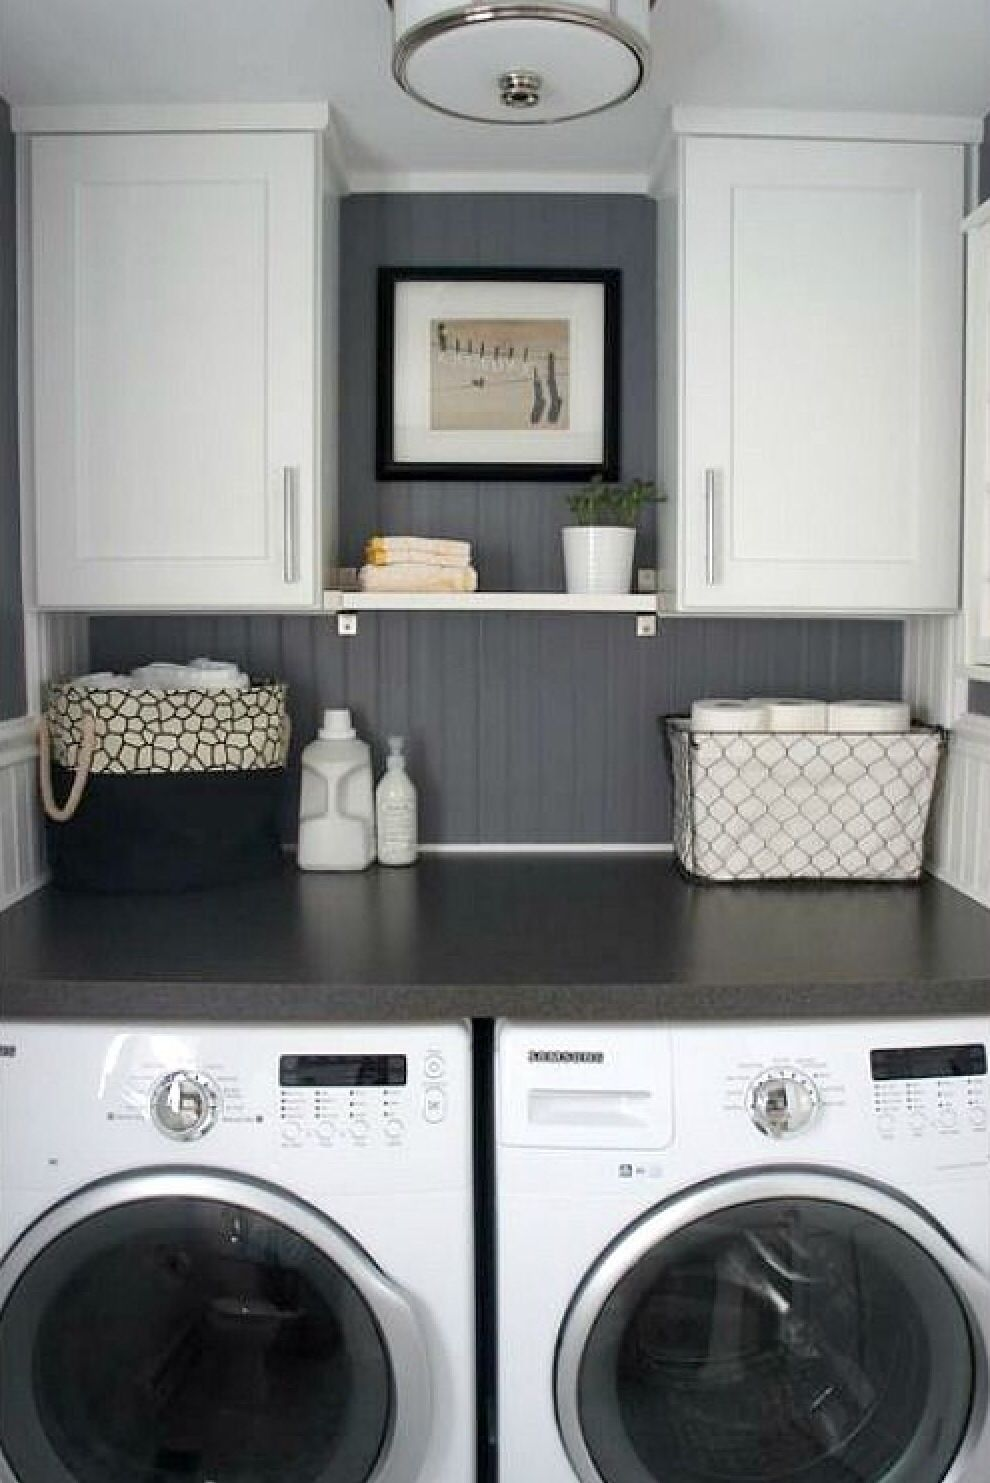 Add A Washer Dryer To Walk In Closet Laundry Room Remodel Laundry In Bathroom Laundry Room